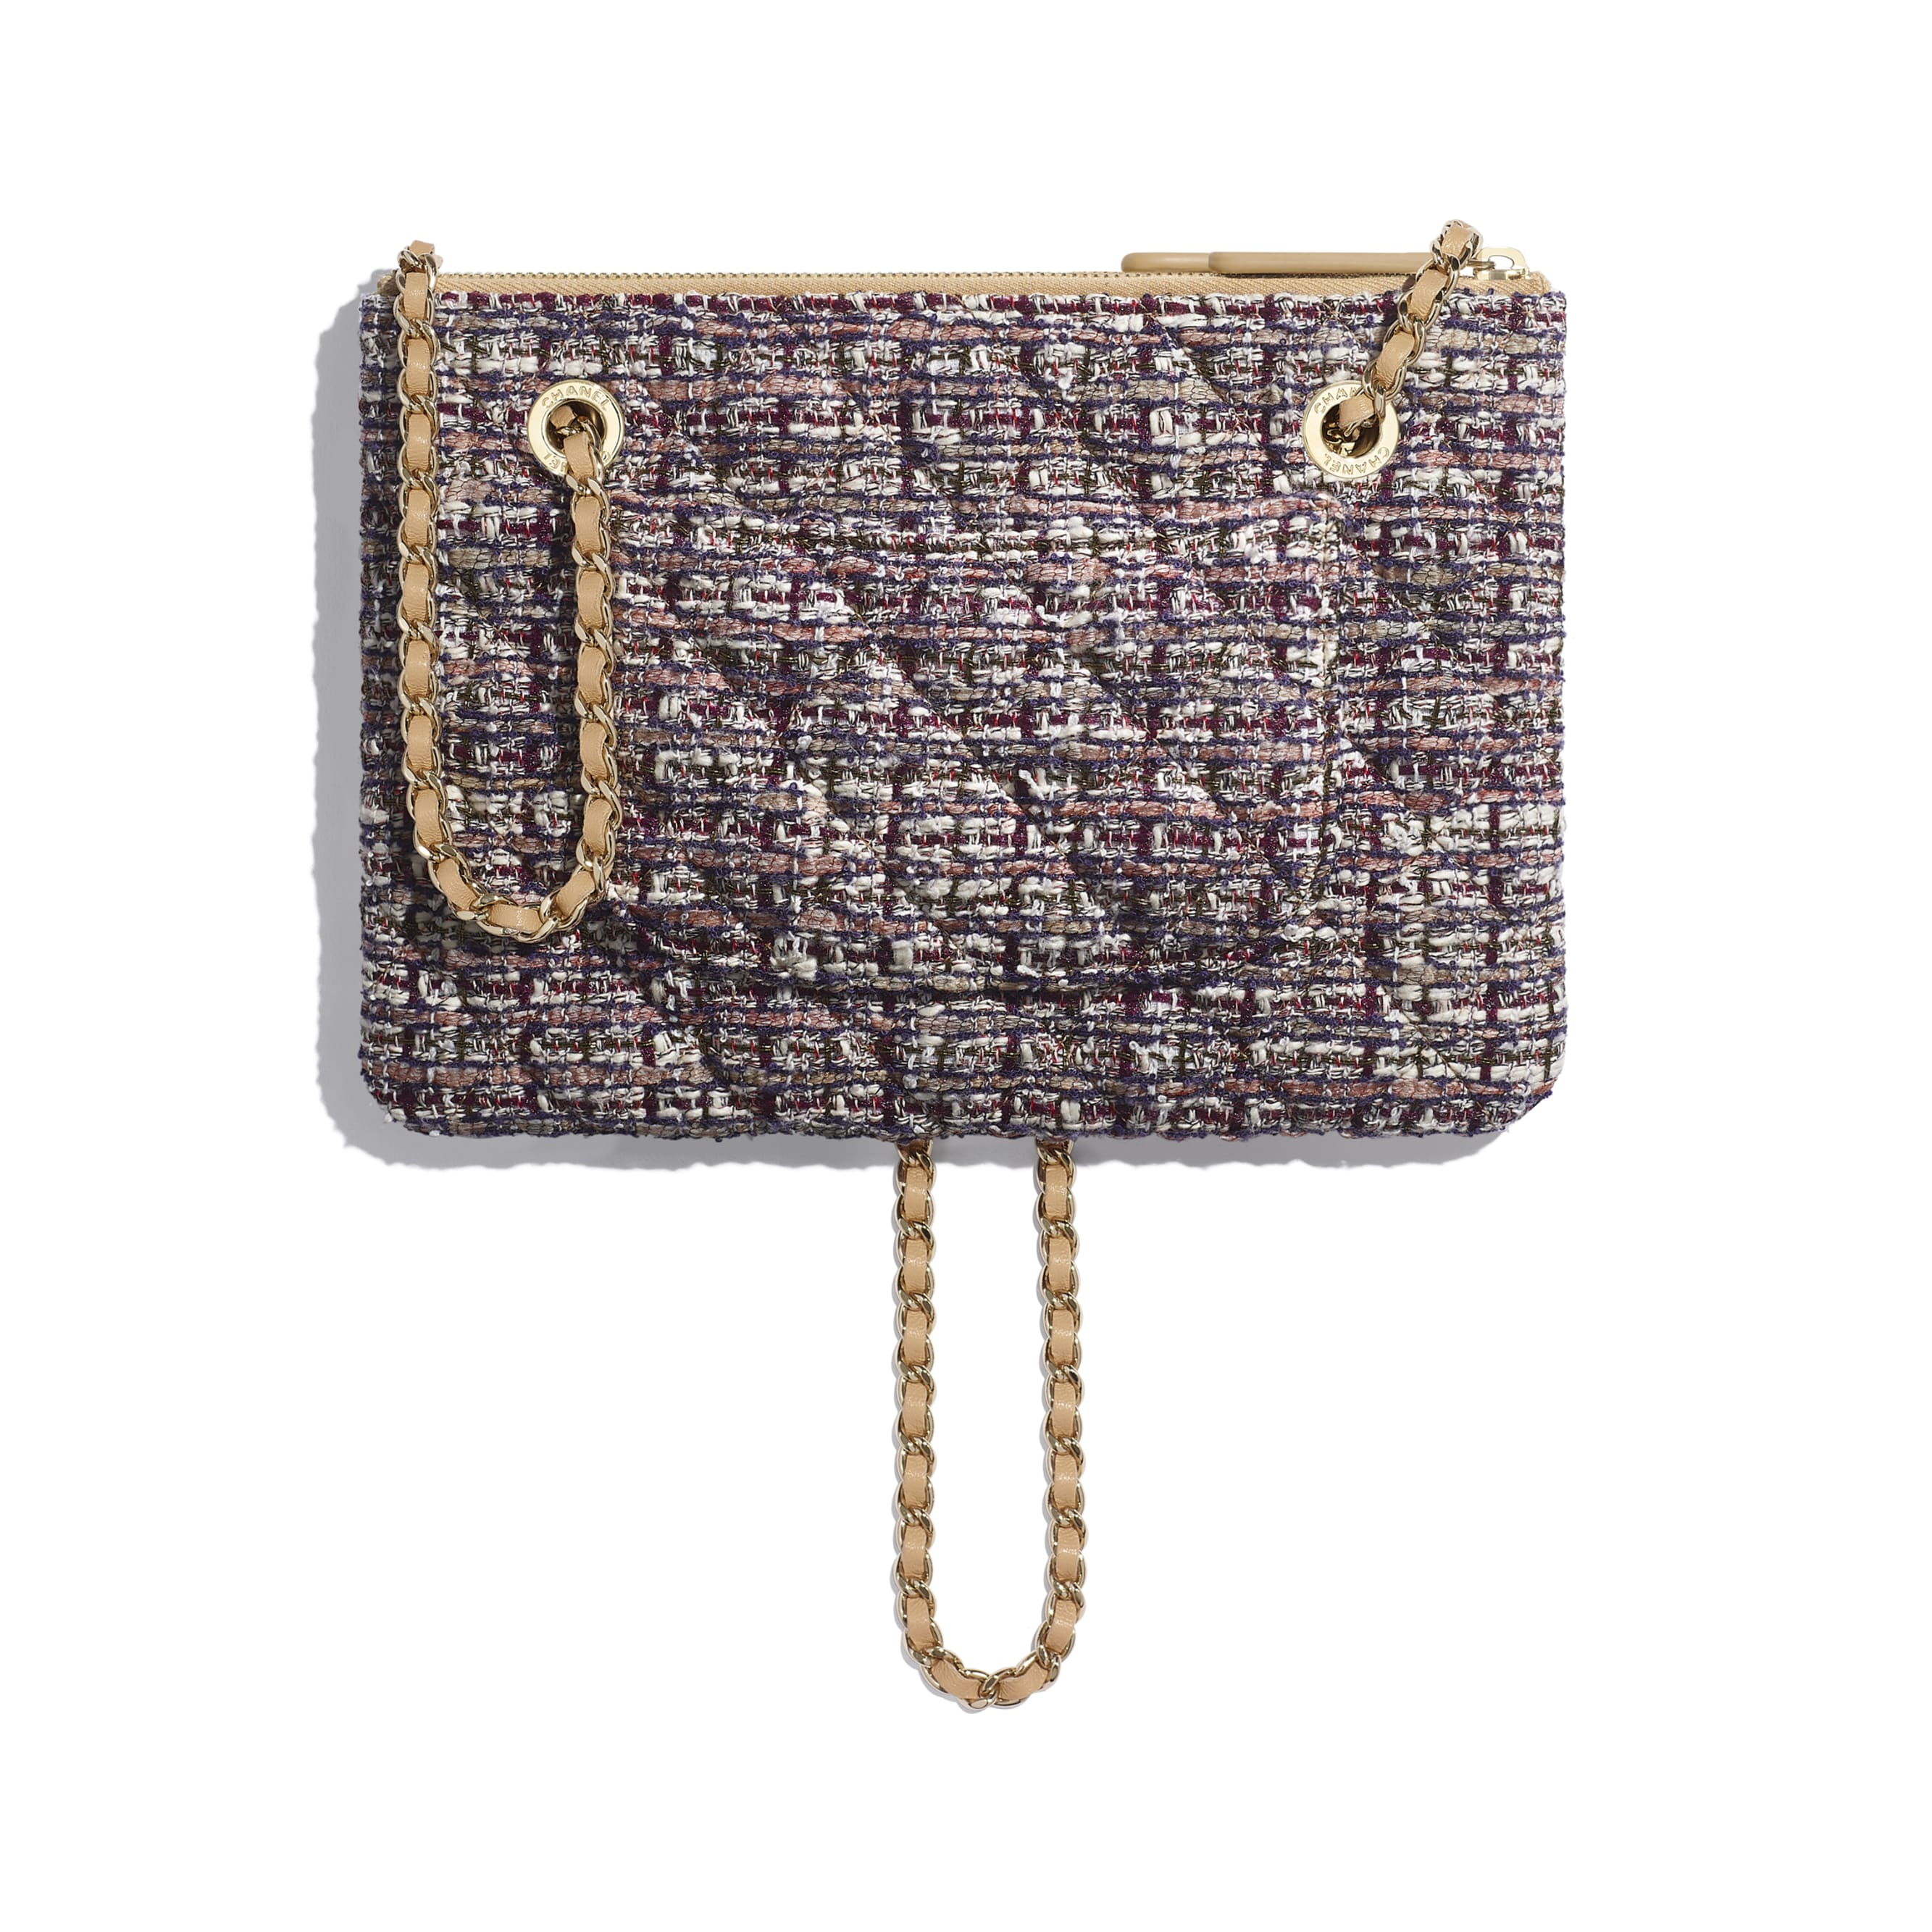 Clutch With Chain - Beige, Burgundy, Ecru & Navy Blue - Tweed, Lambskin & Gold Metal - Alternative view - see standard sized version